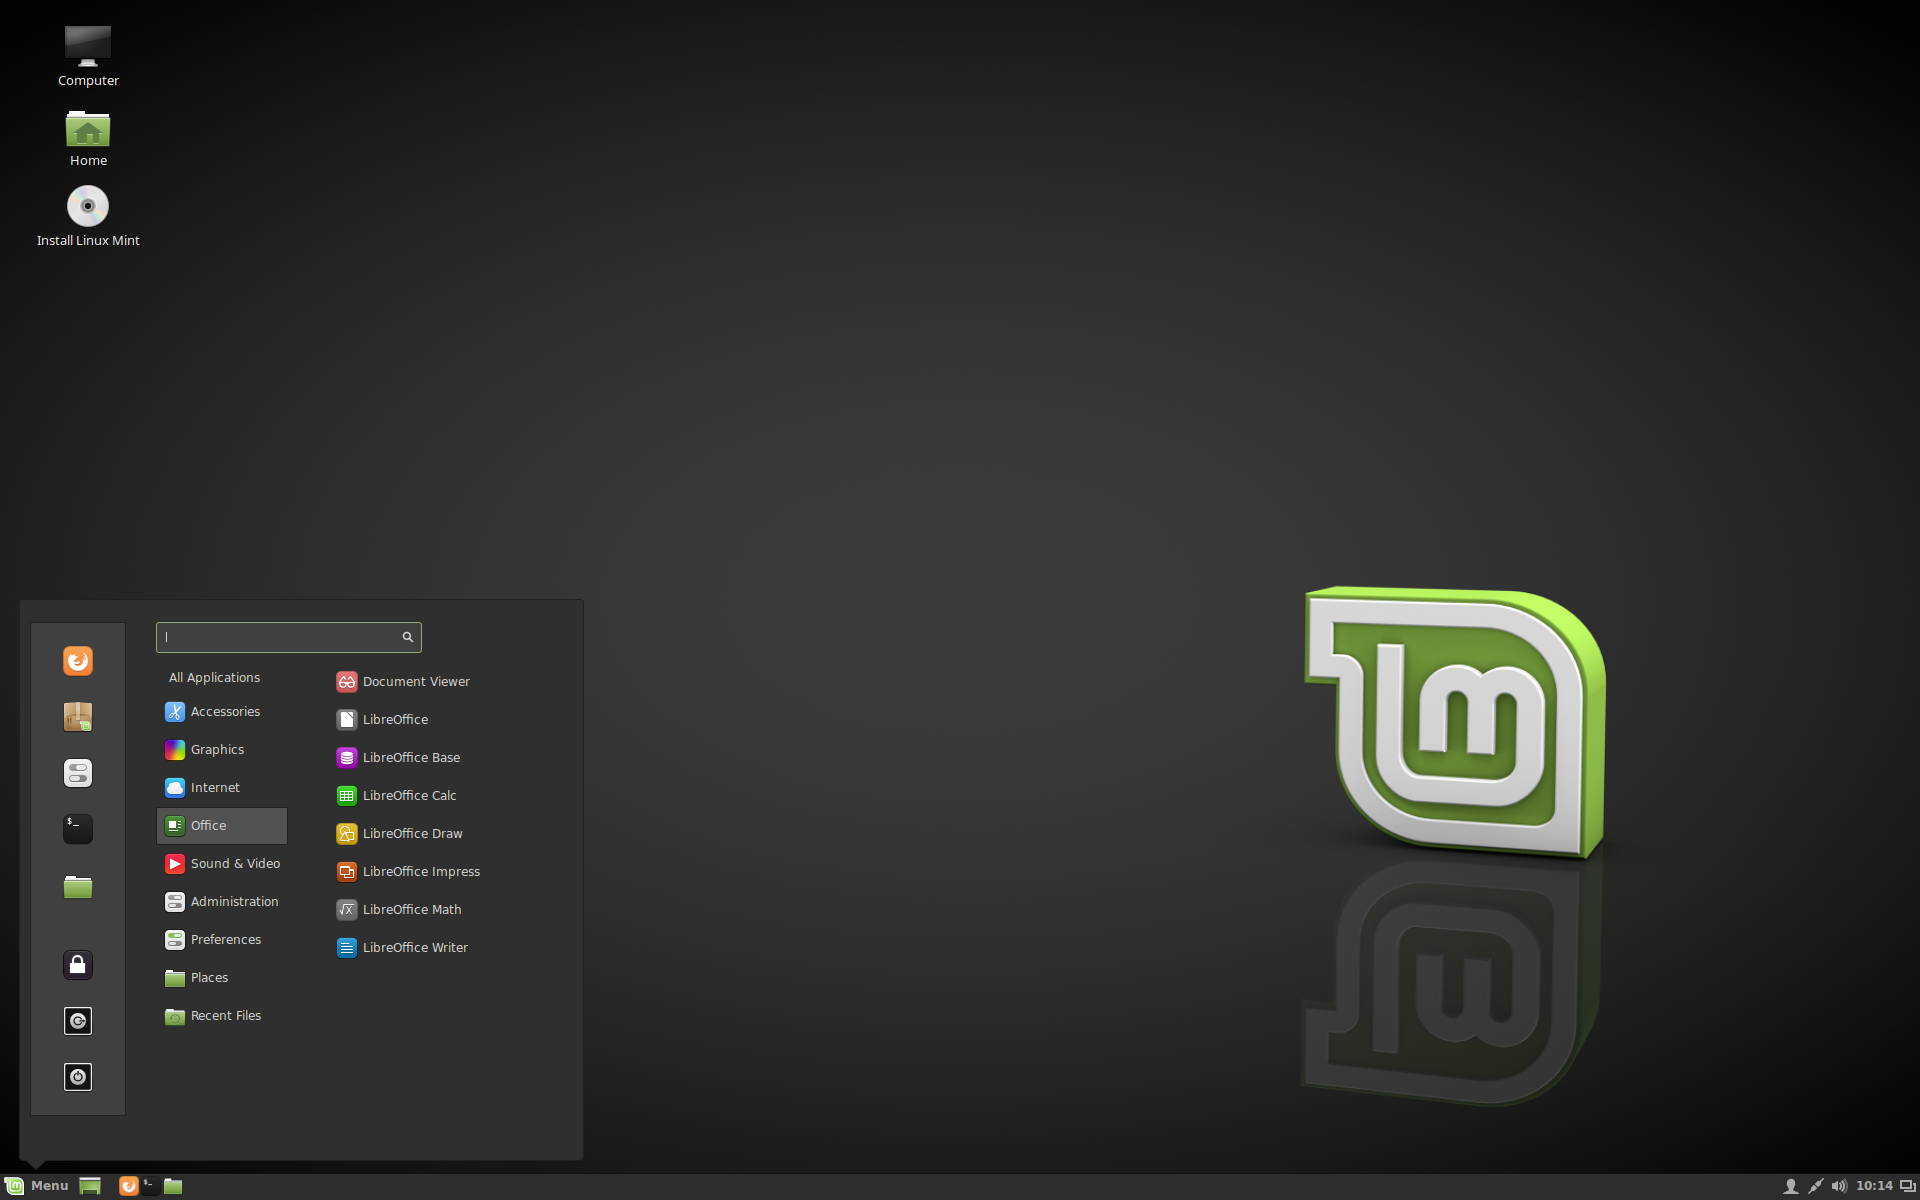 Linux Mint Desktop Screenshot